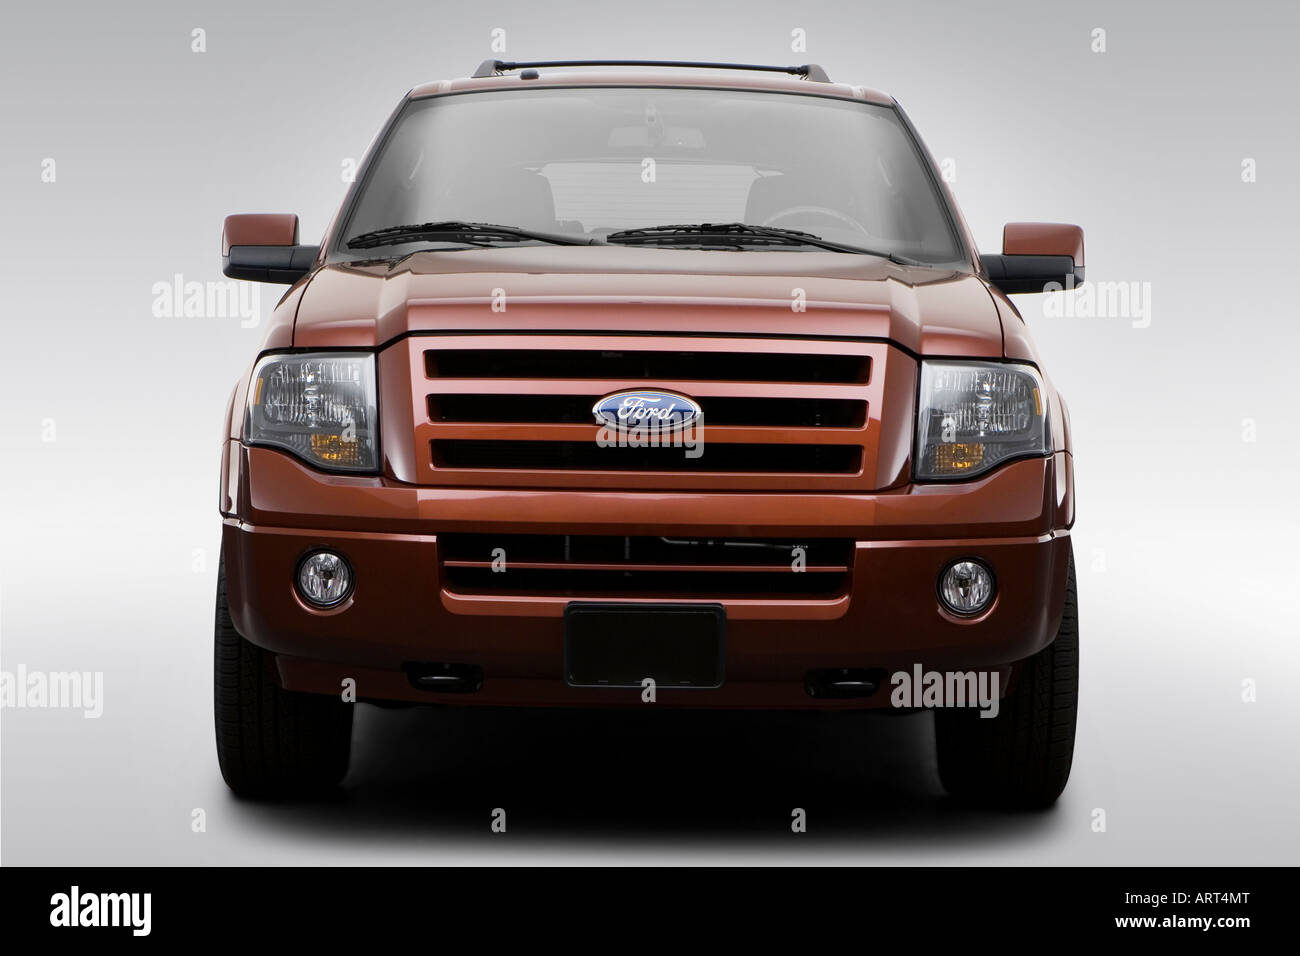 2008 ford expedition el limited in orange low wide front stock photo royalty free image. Black Bedroom Furniture Sets. Home Design Ideas